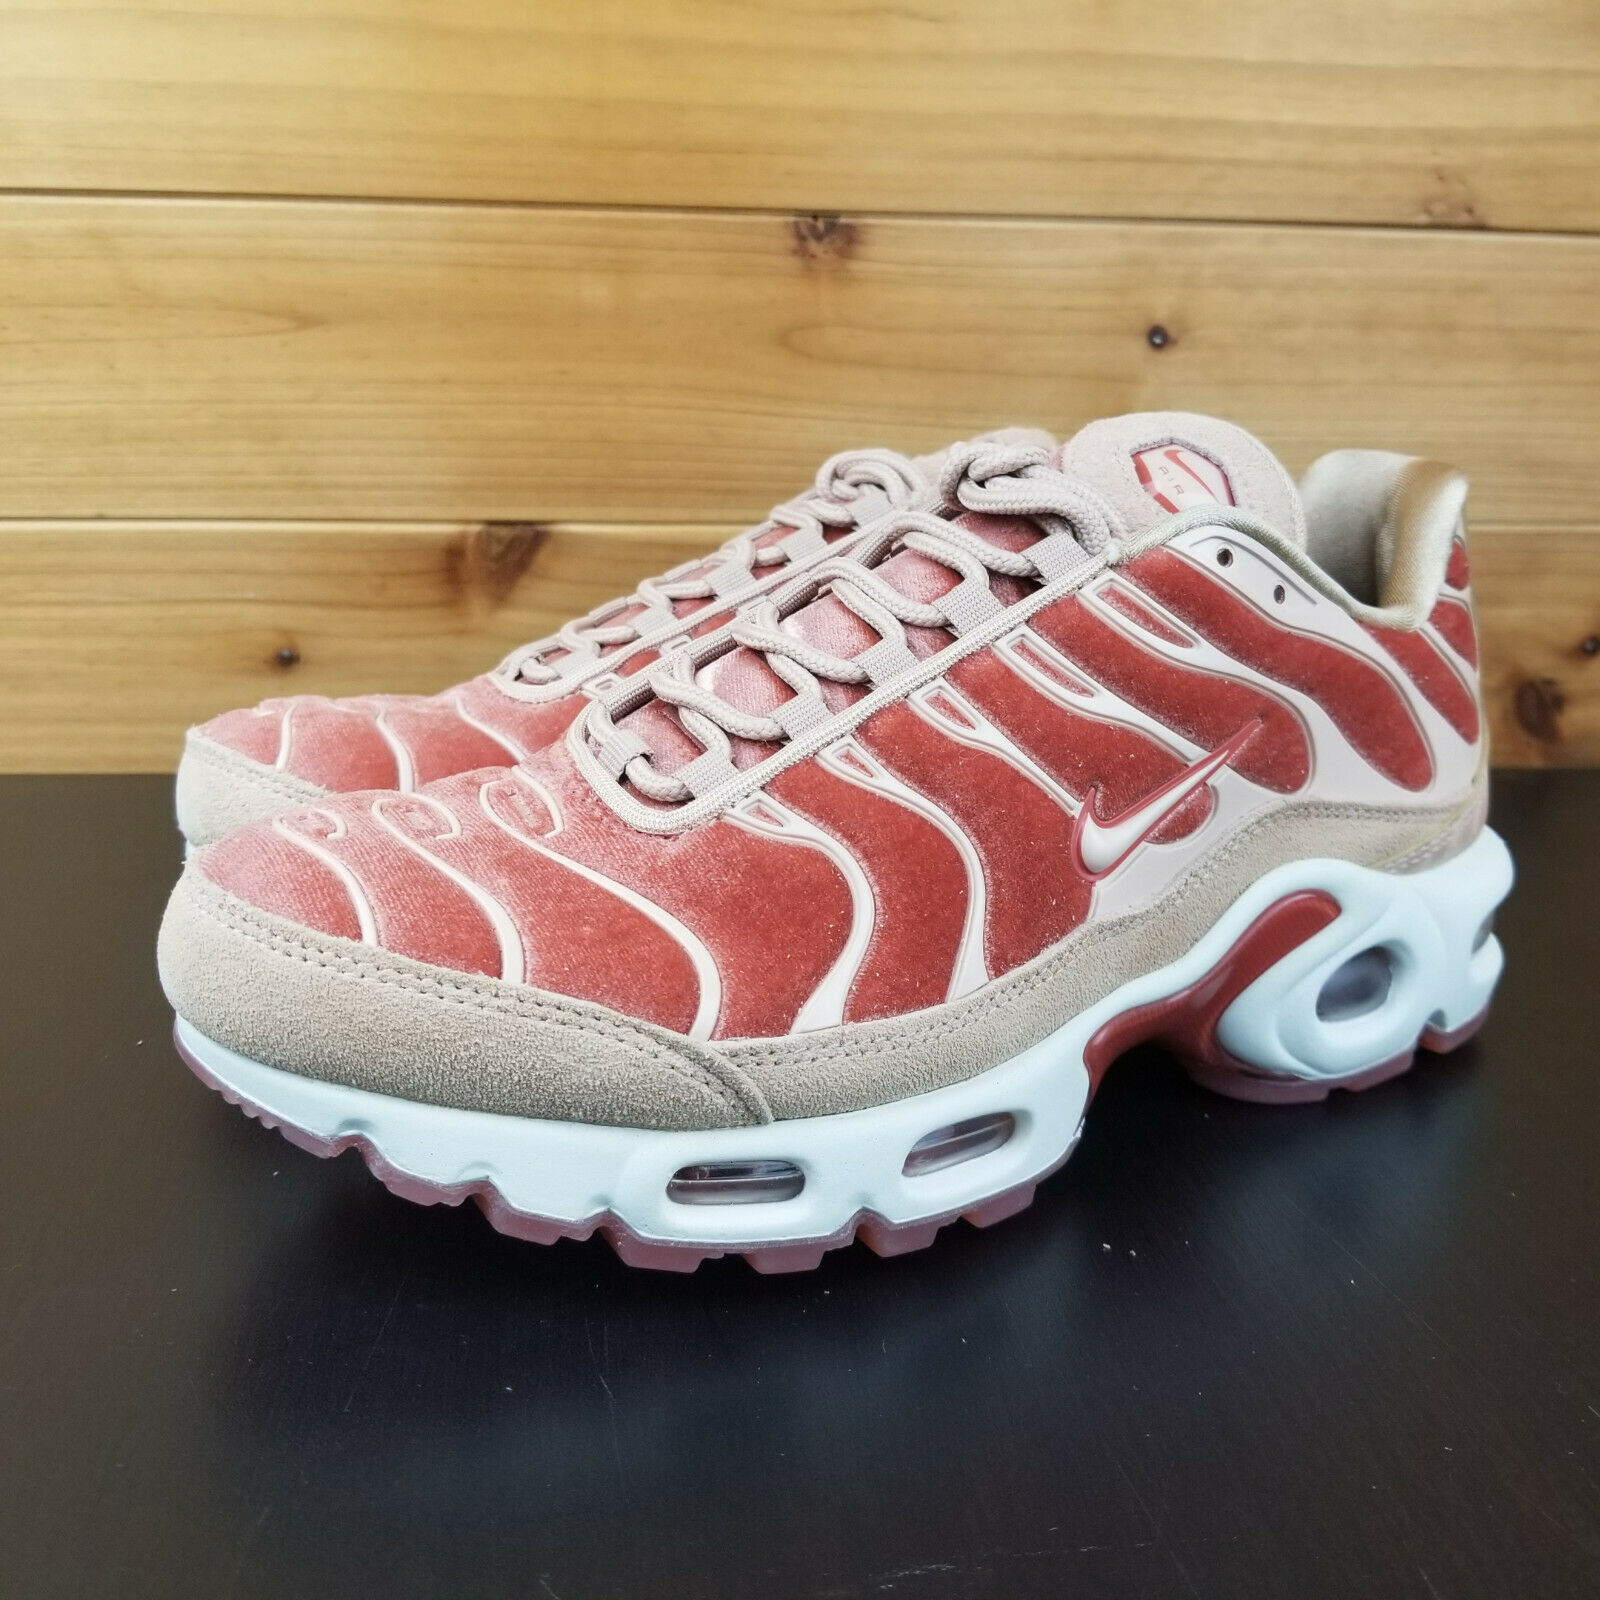 Nike Air Max Plus LX Women's shoes Velvet Dusty Peach Pink Beige AH6788-201